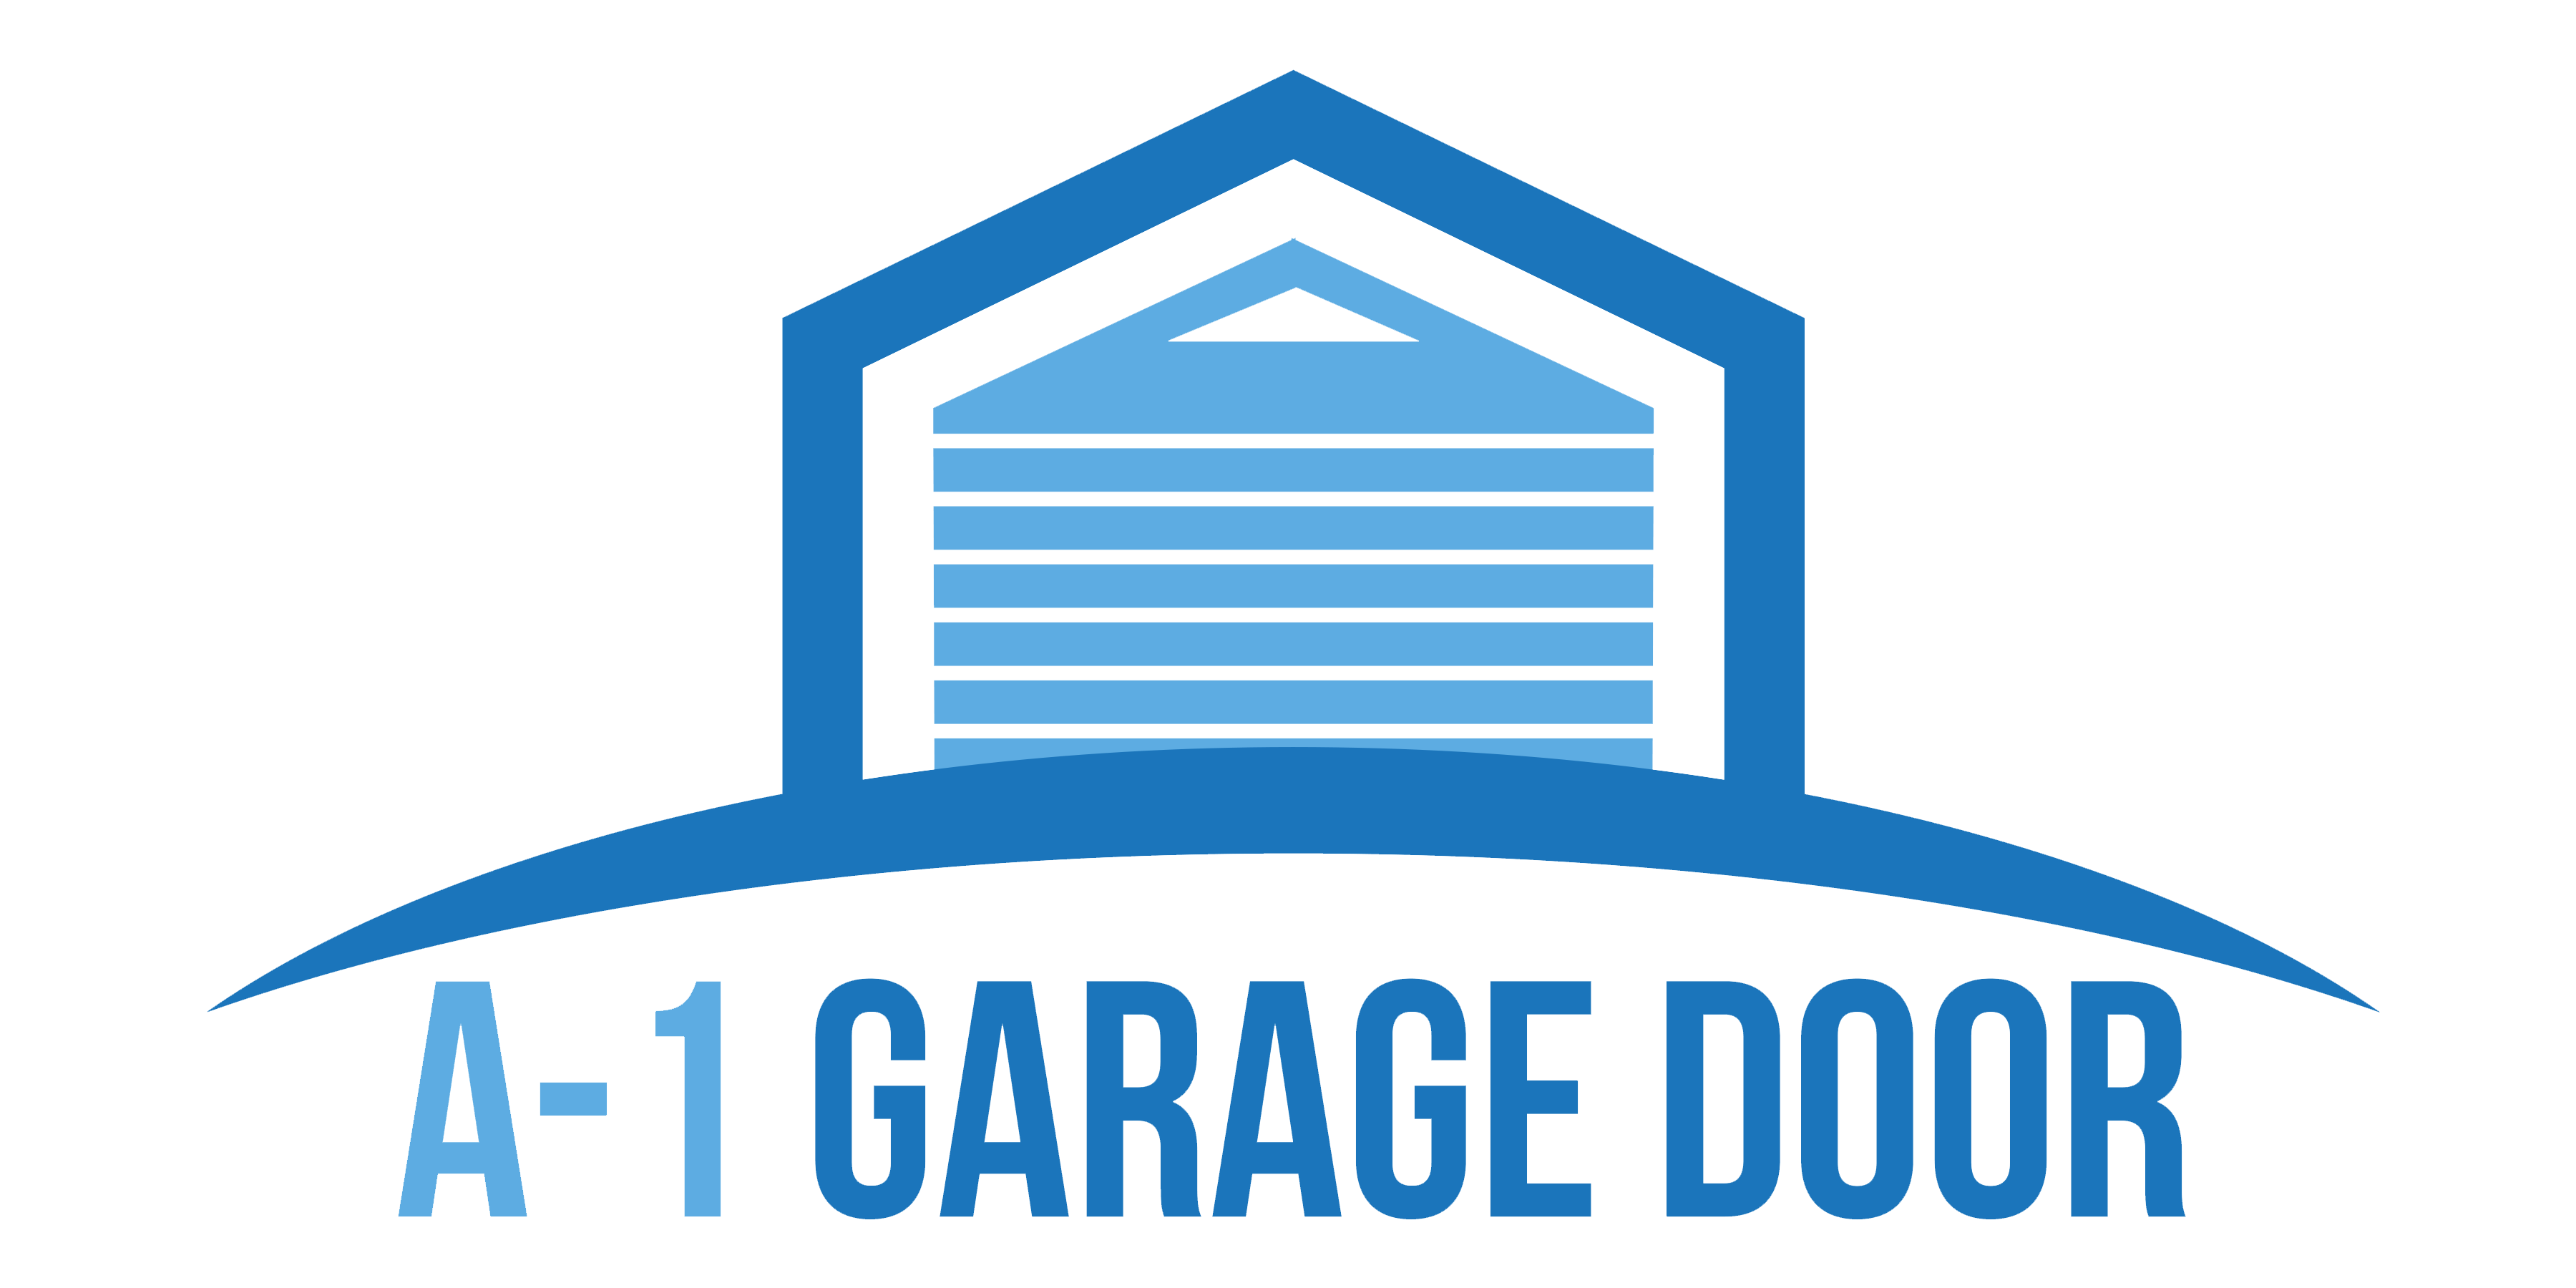 Elegant A1 Garage Door Is A Full Line Garage Door Company Operated By Specially  Trained, Certified And Uniformed Technicians. We Specialize In Providing  Quality ...